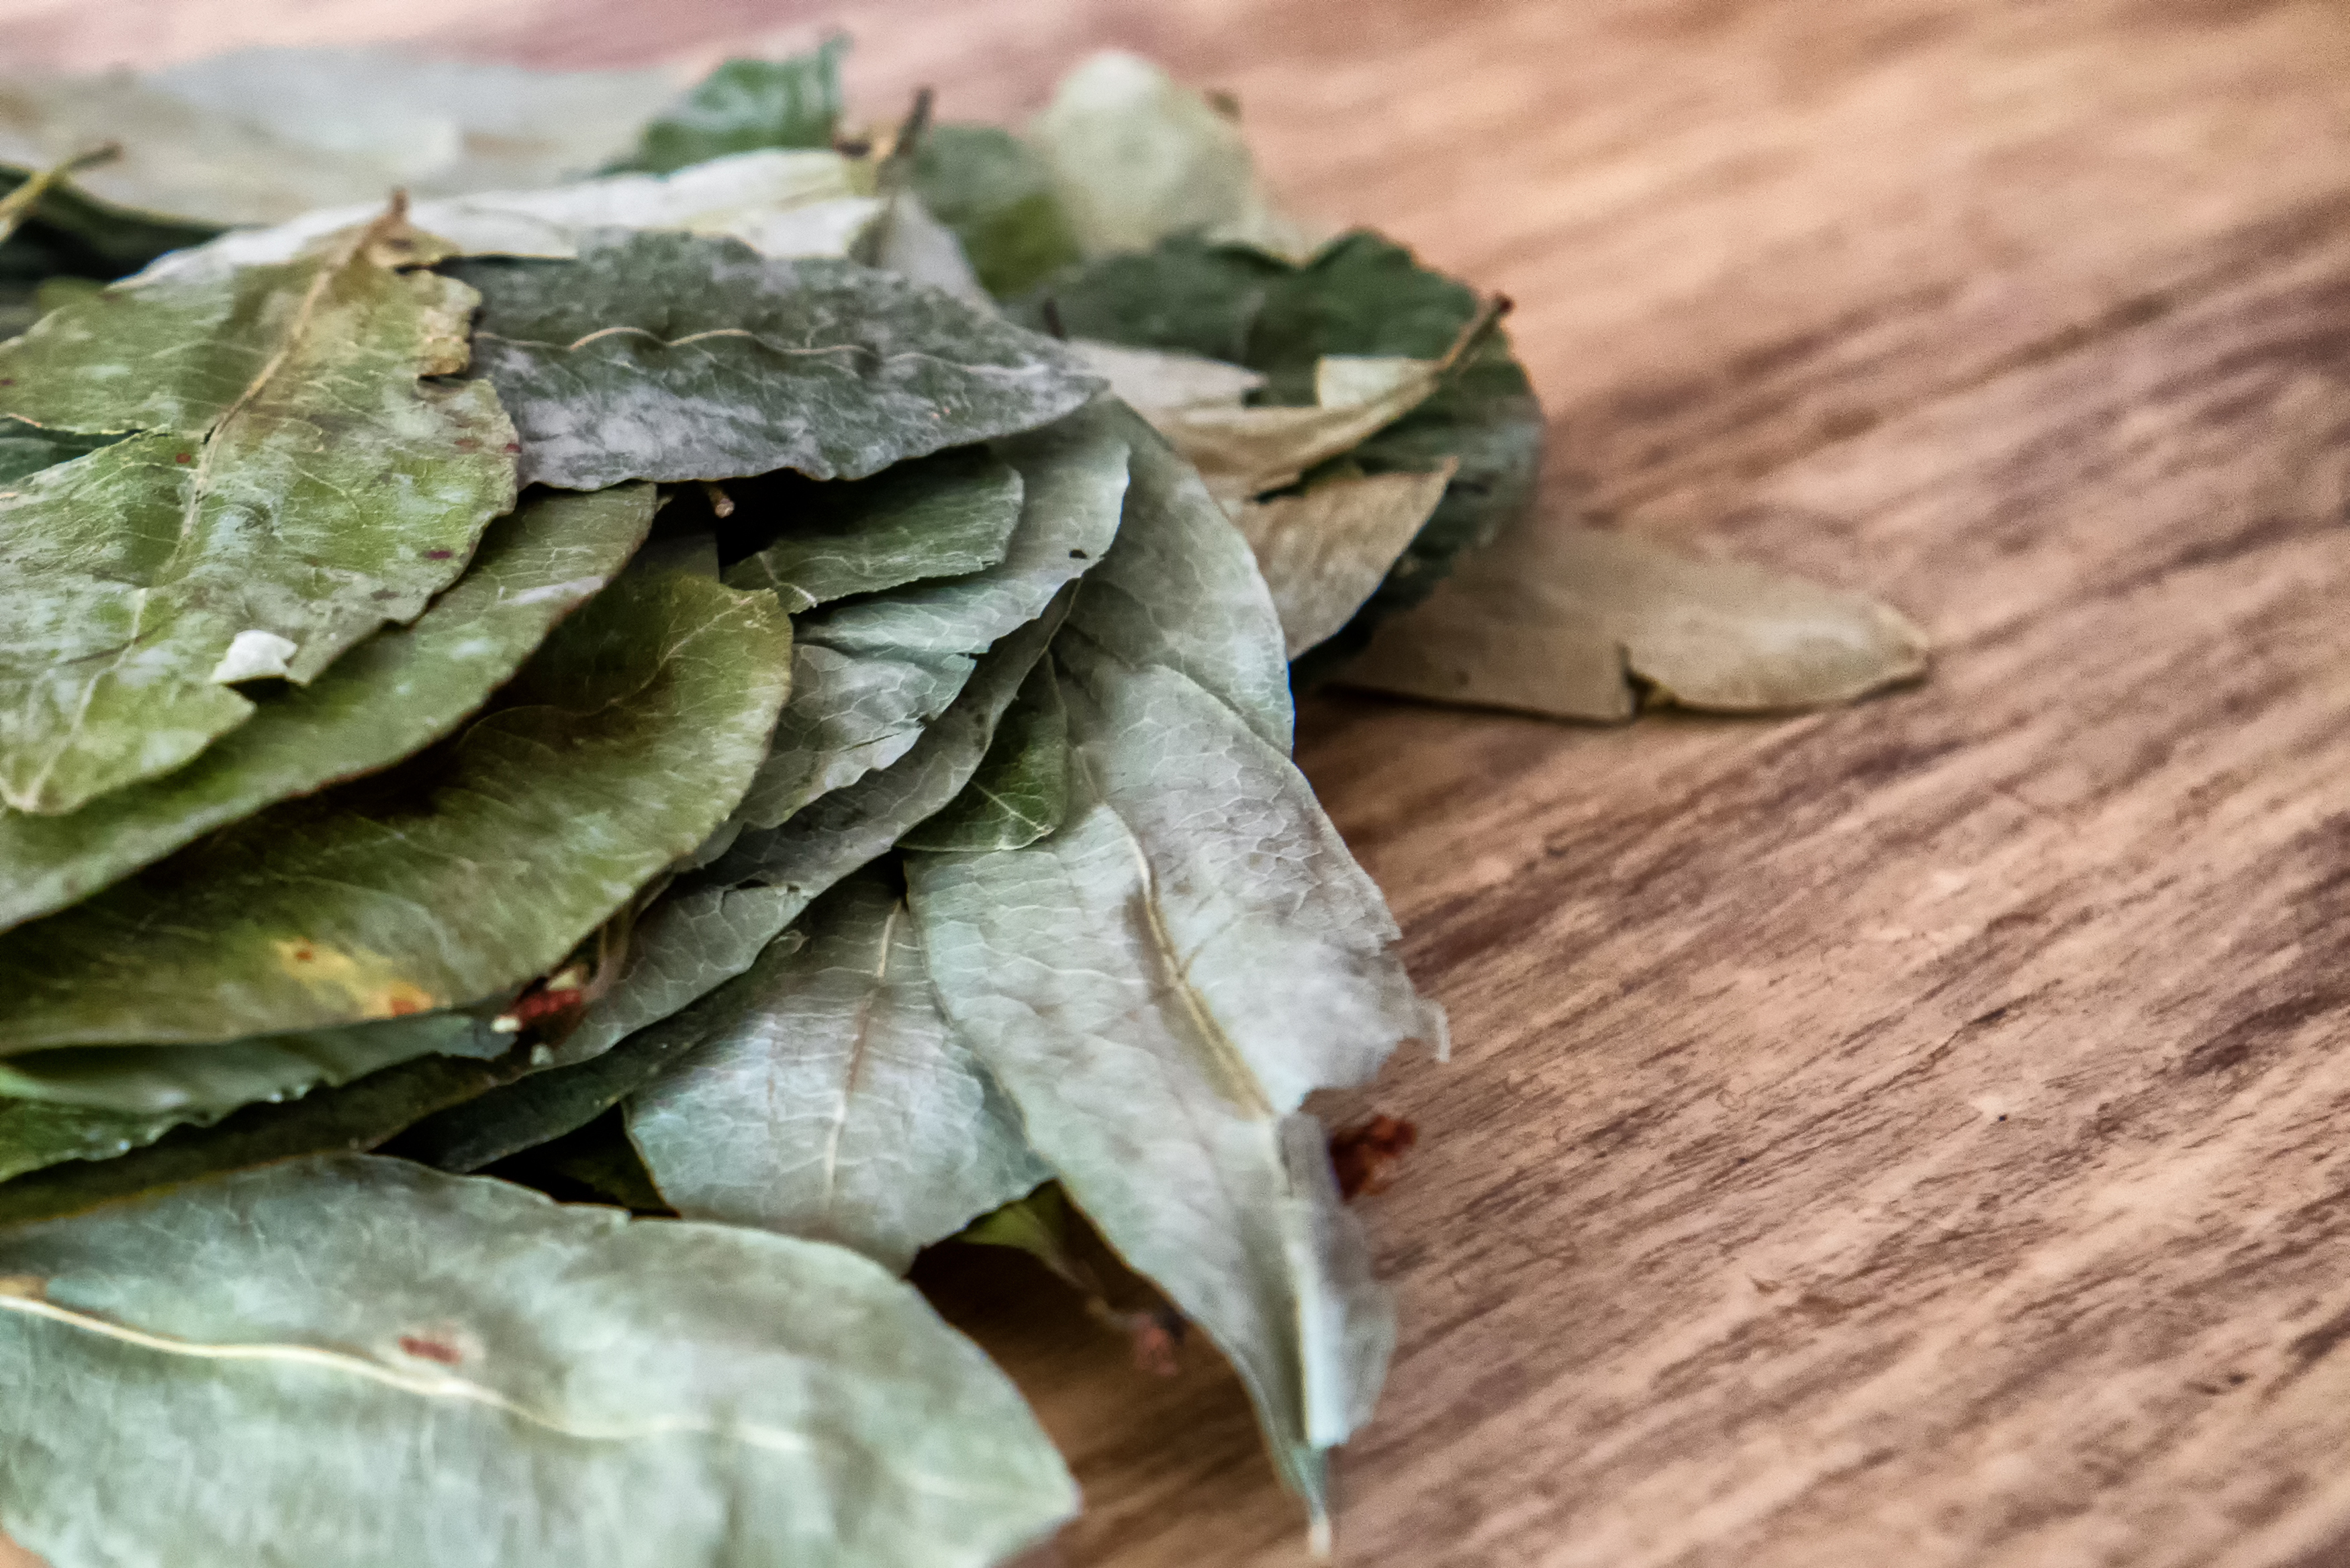 Coca Leaves: The Andean solution for altitude sickness